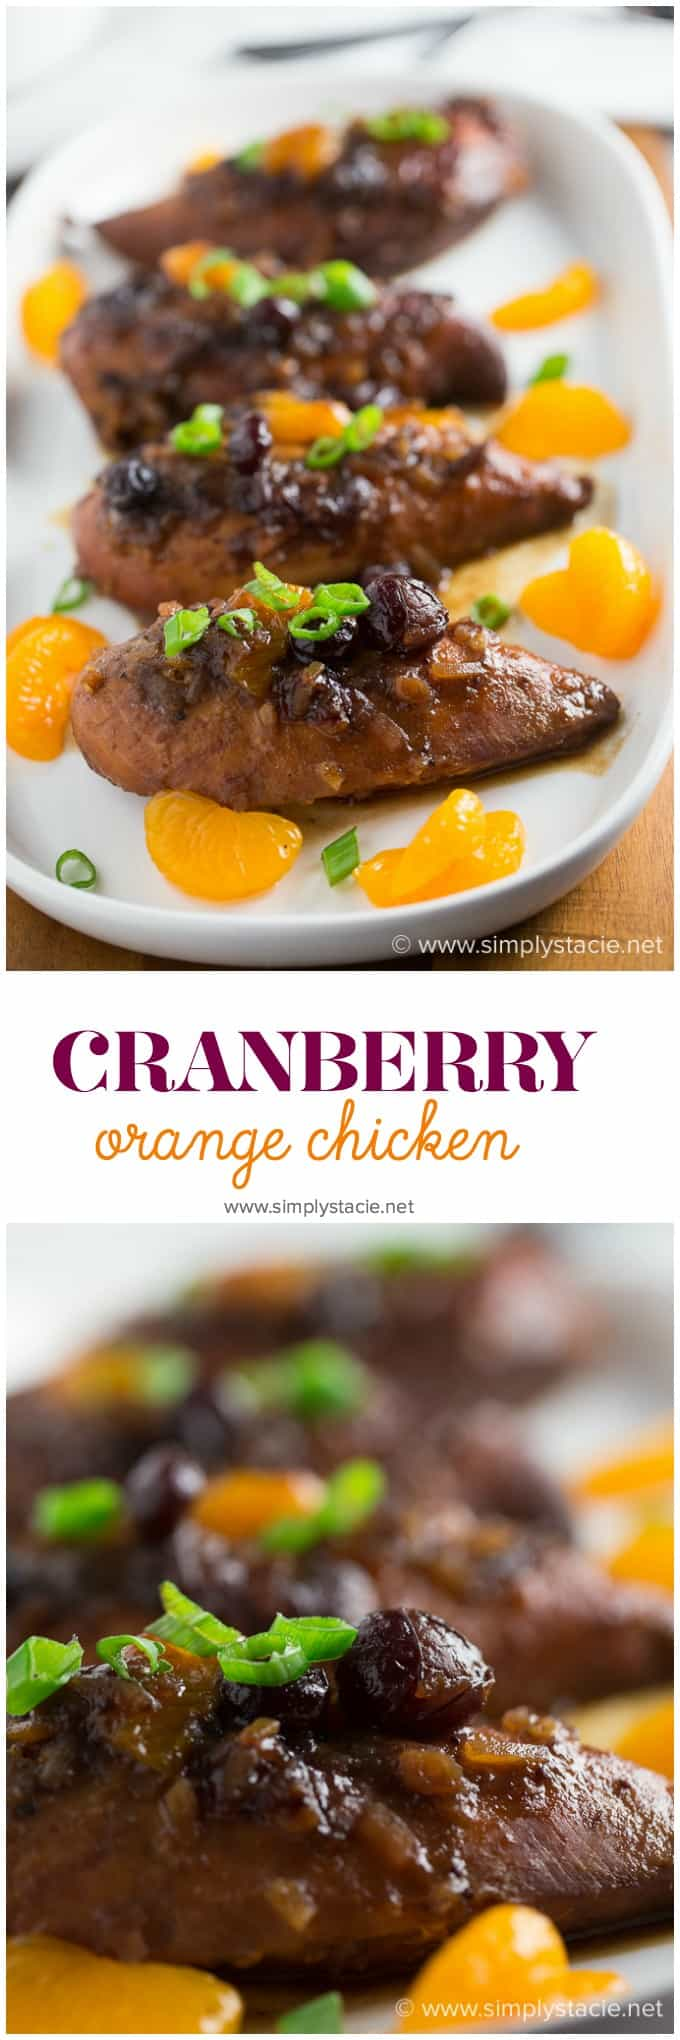 Slow Cooker Cranberry Orange Chicken - Moist chicken breast covered in a sweet cranberry orange glaze with a hint of ginger. My family couldn't get enough of this easy recipe.